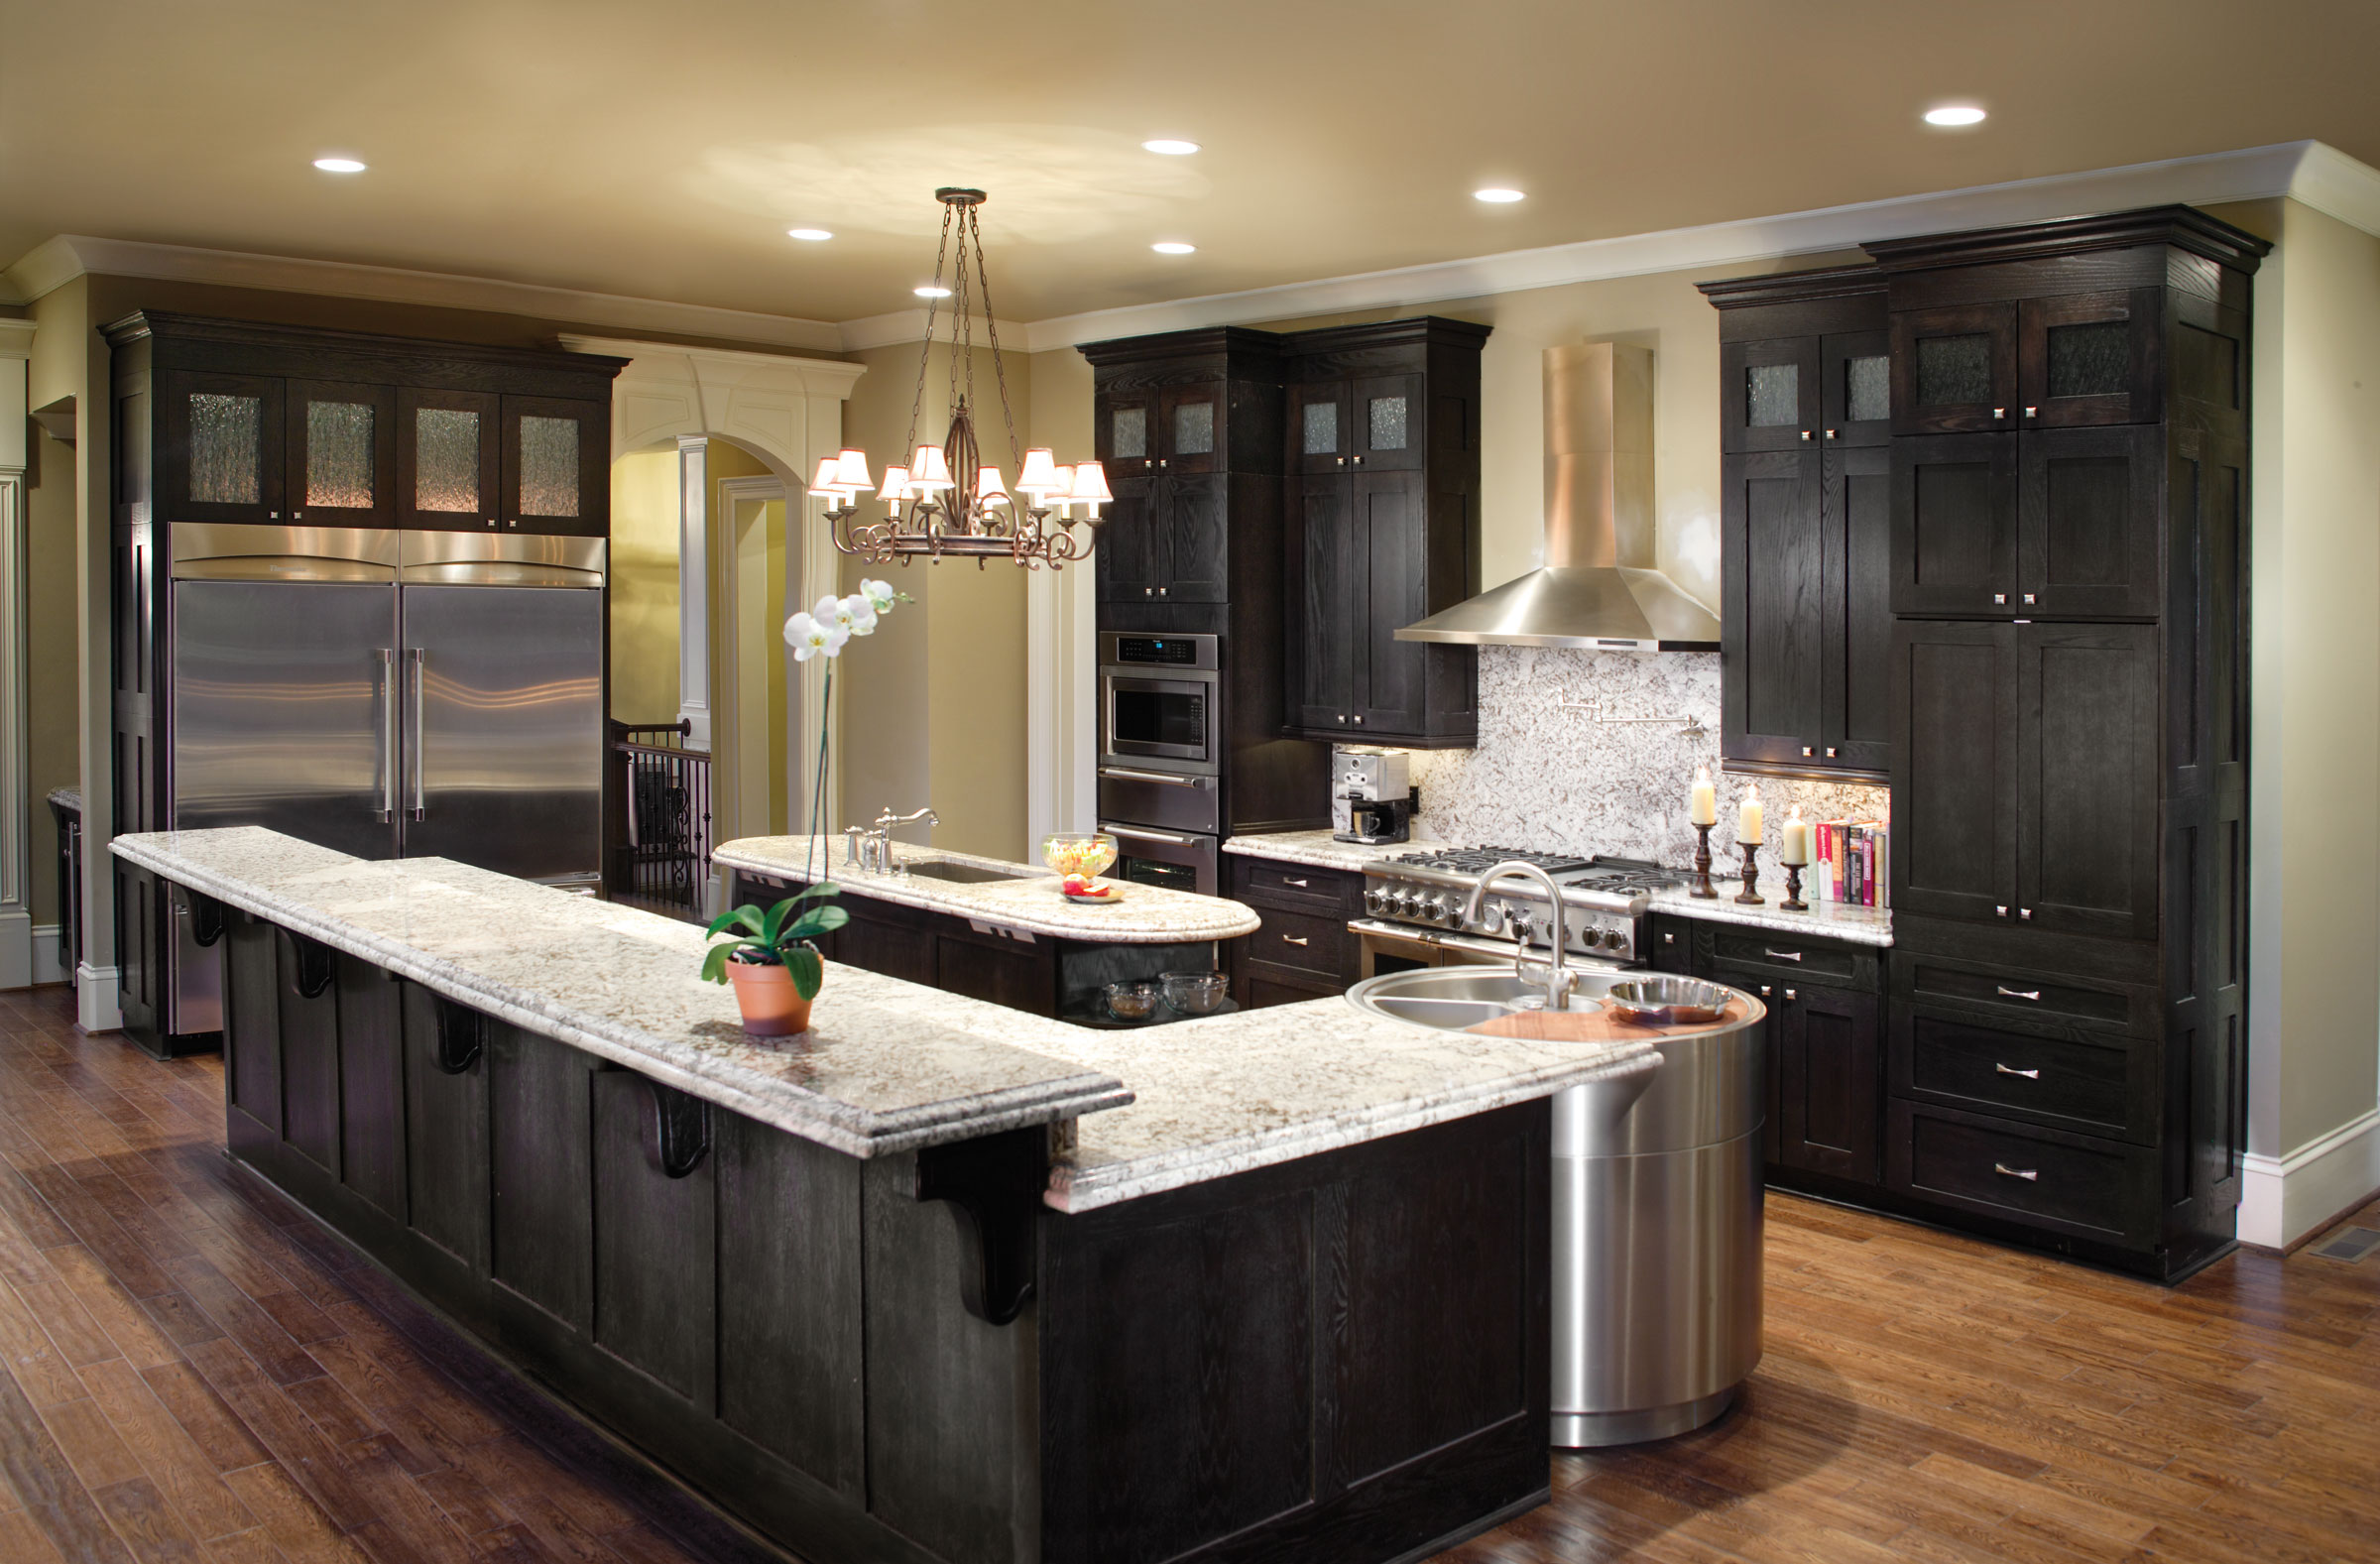 Custom bathroom kitchen cabinets phoenix cabinets by for Black kitchen cabinets